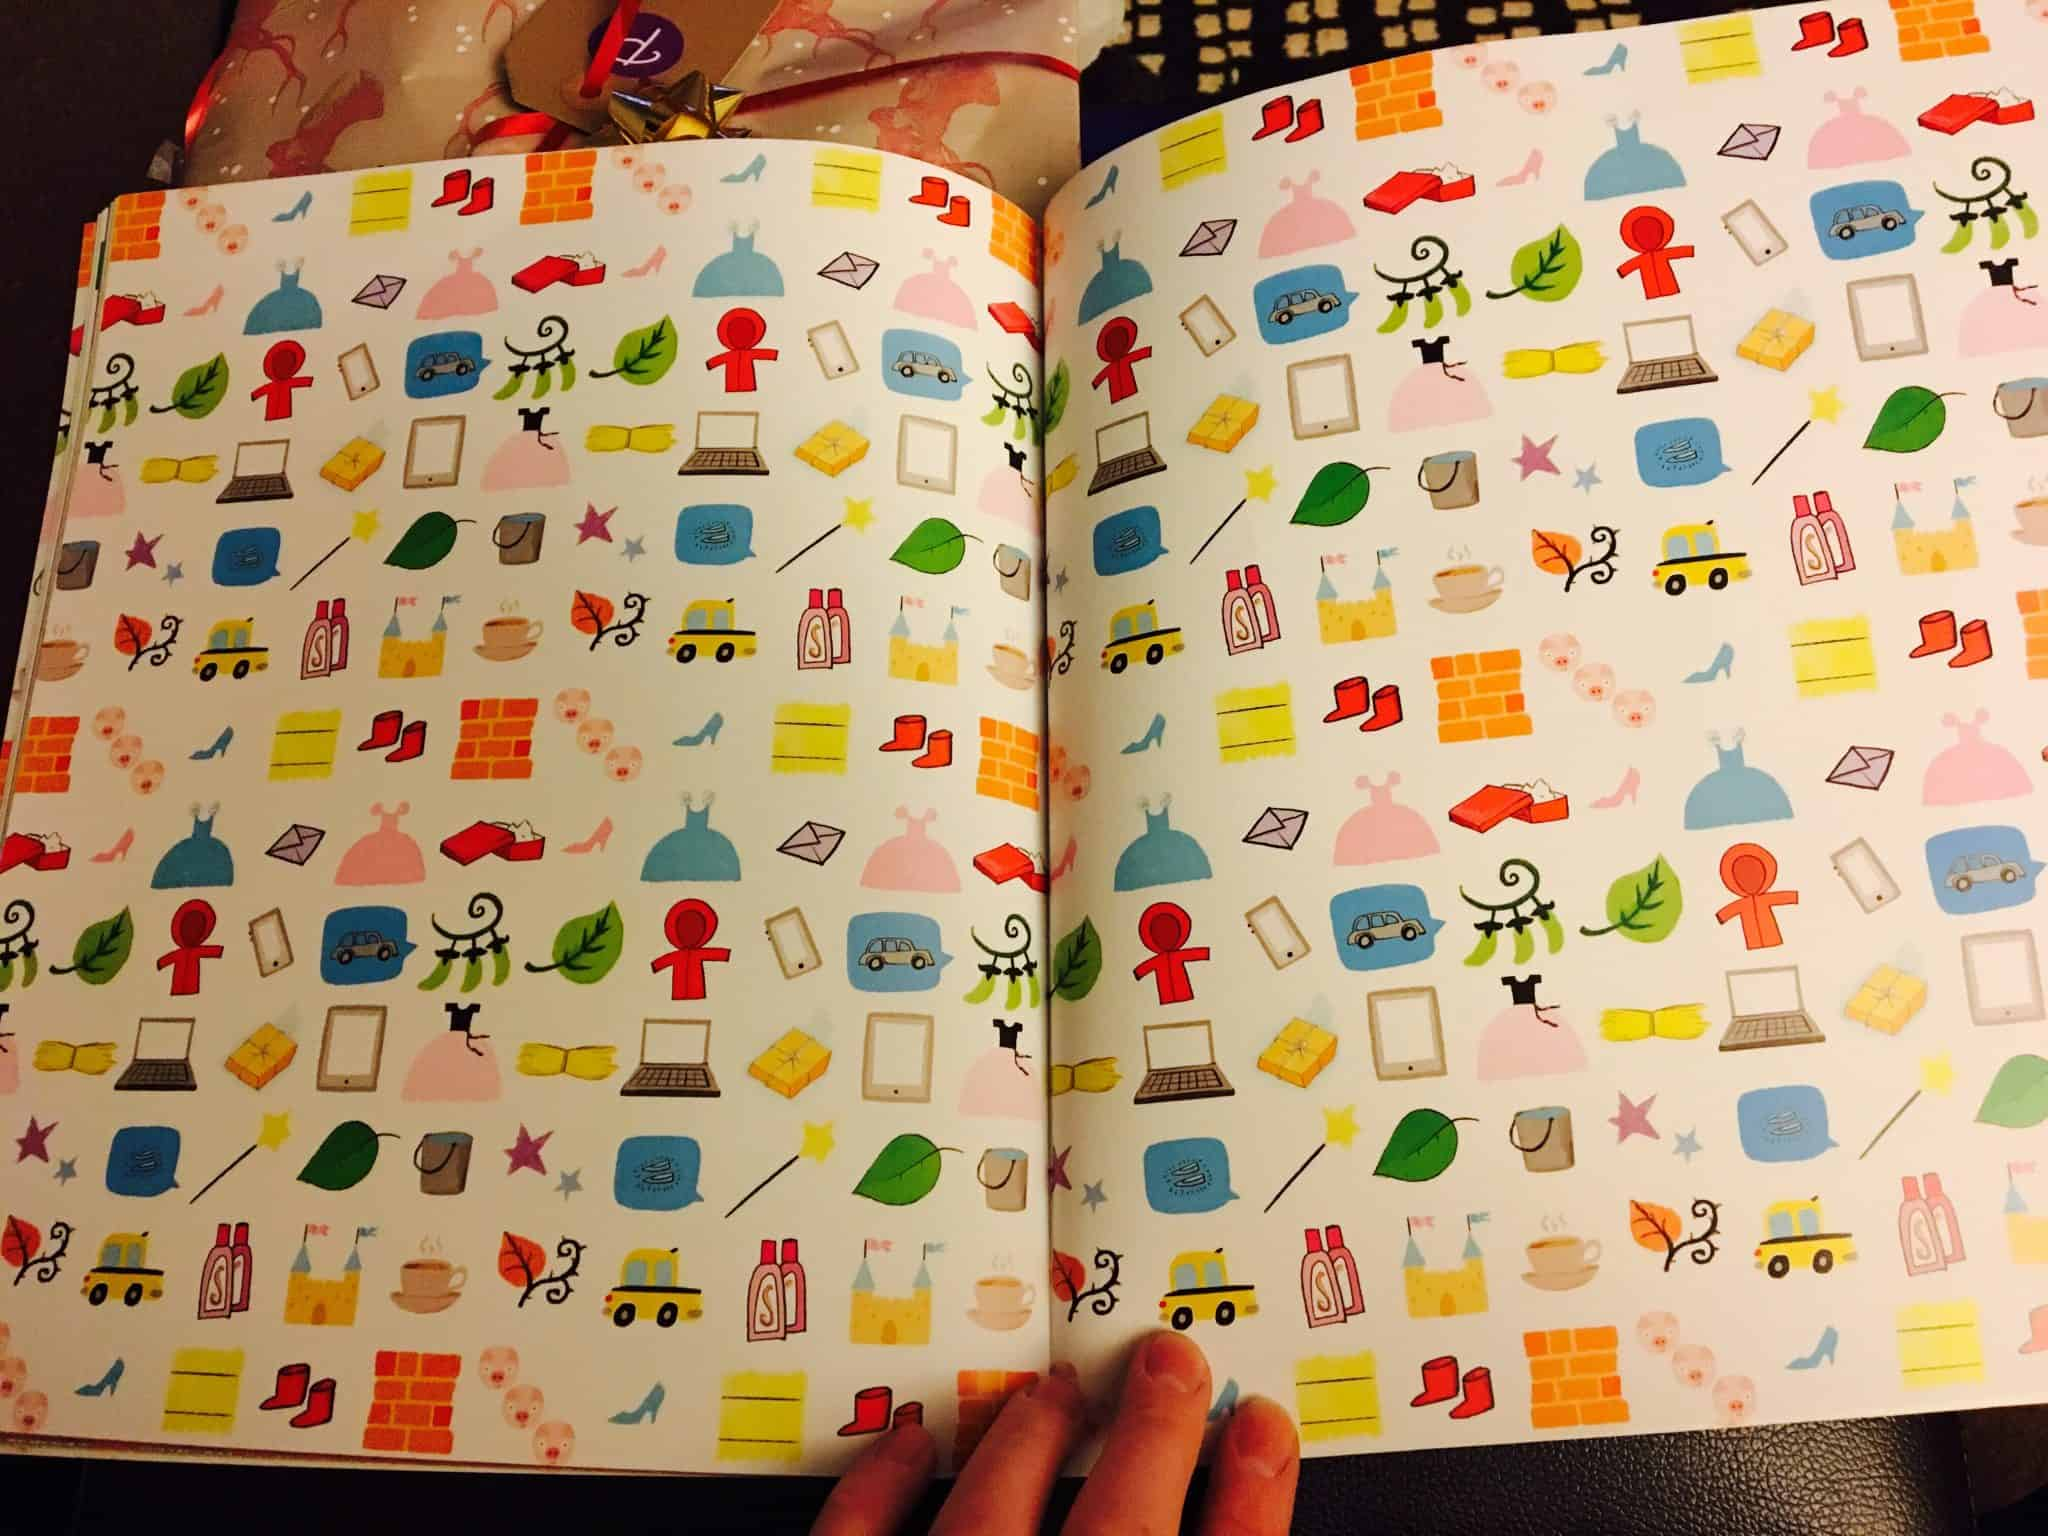 colouful patterns inside the book cover